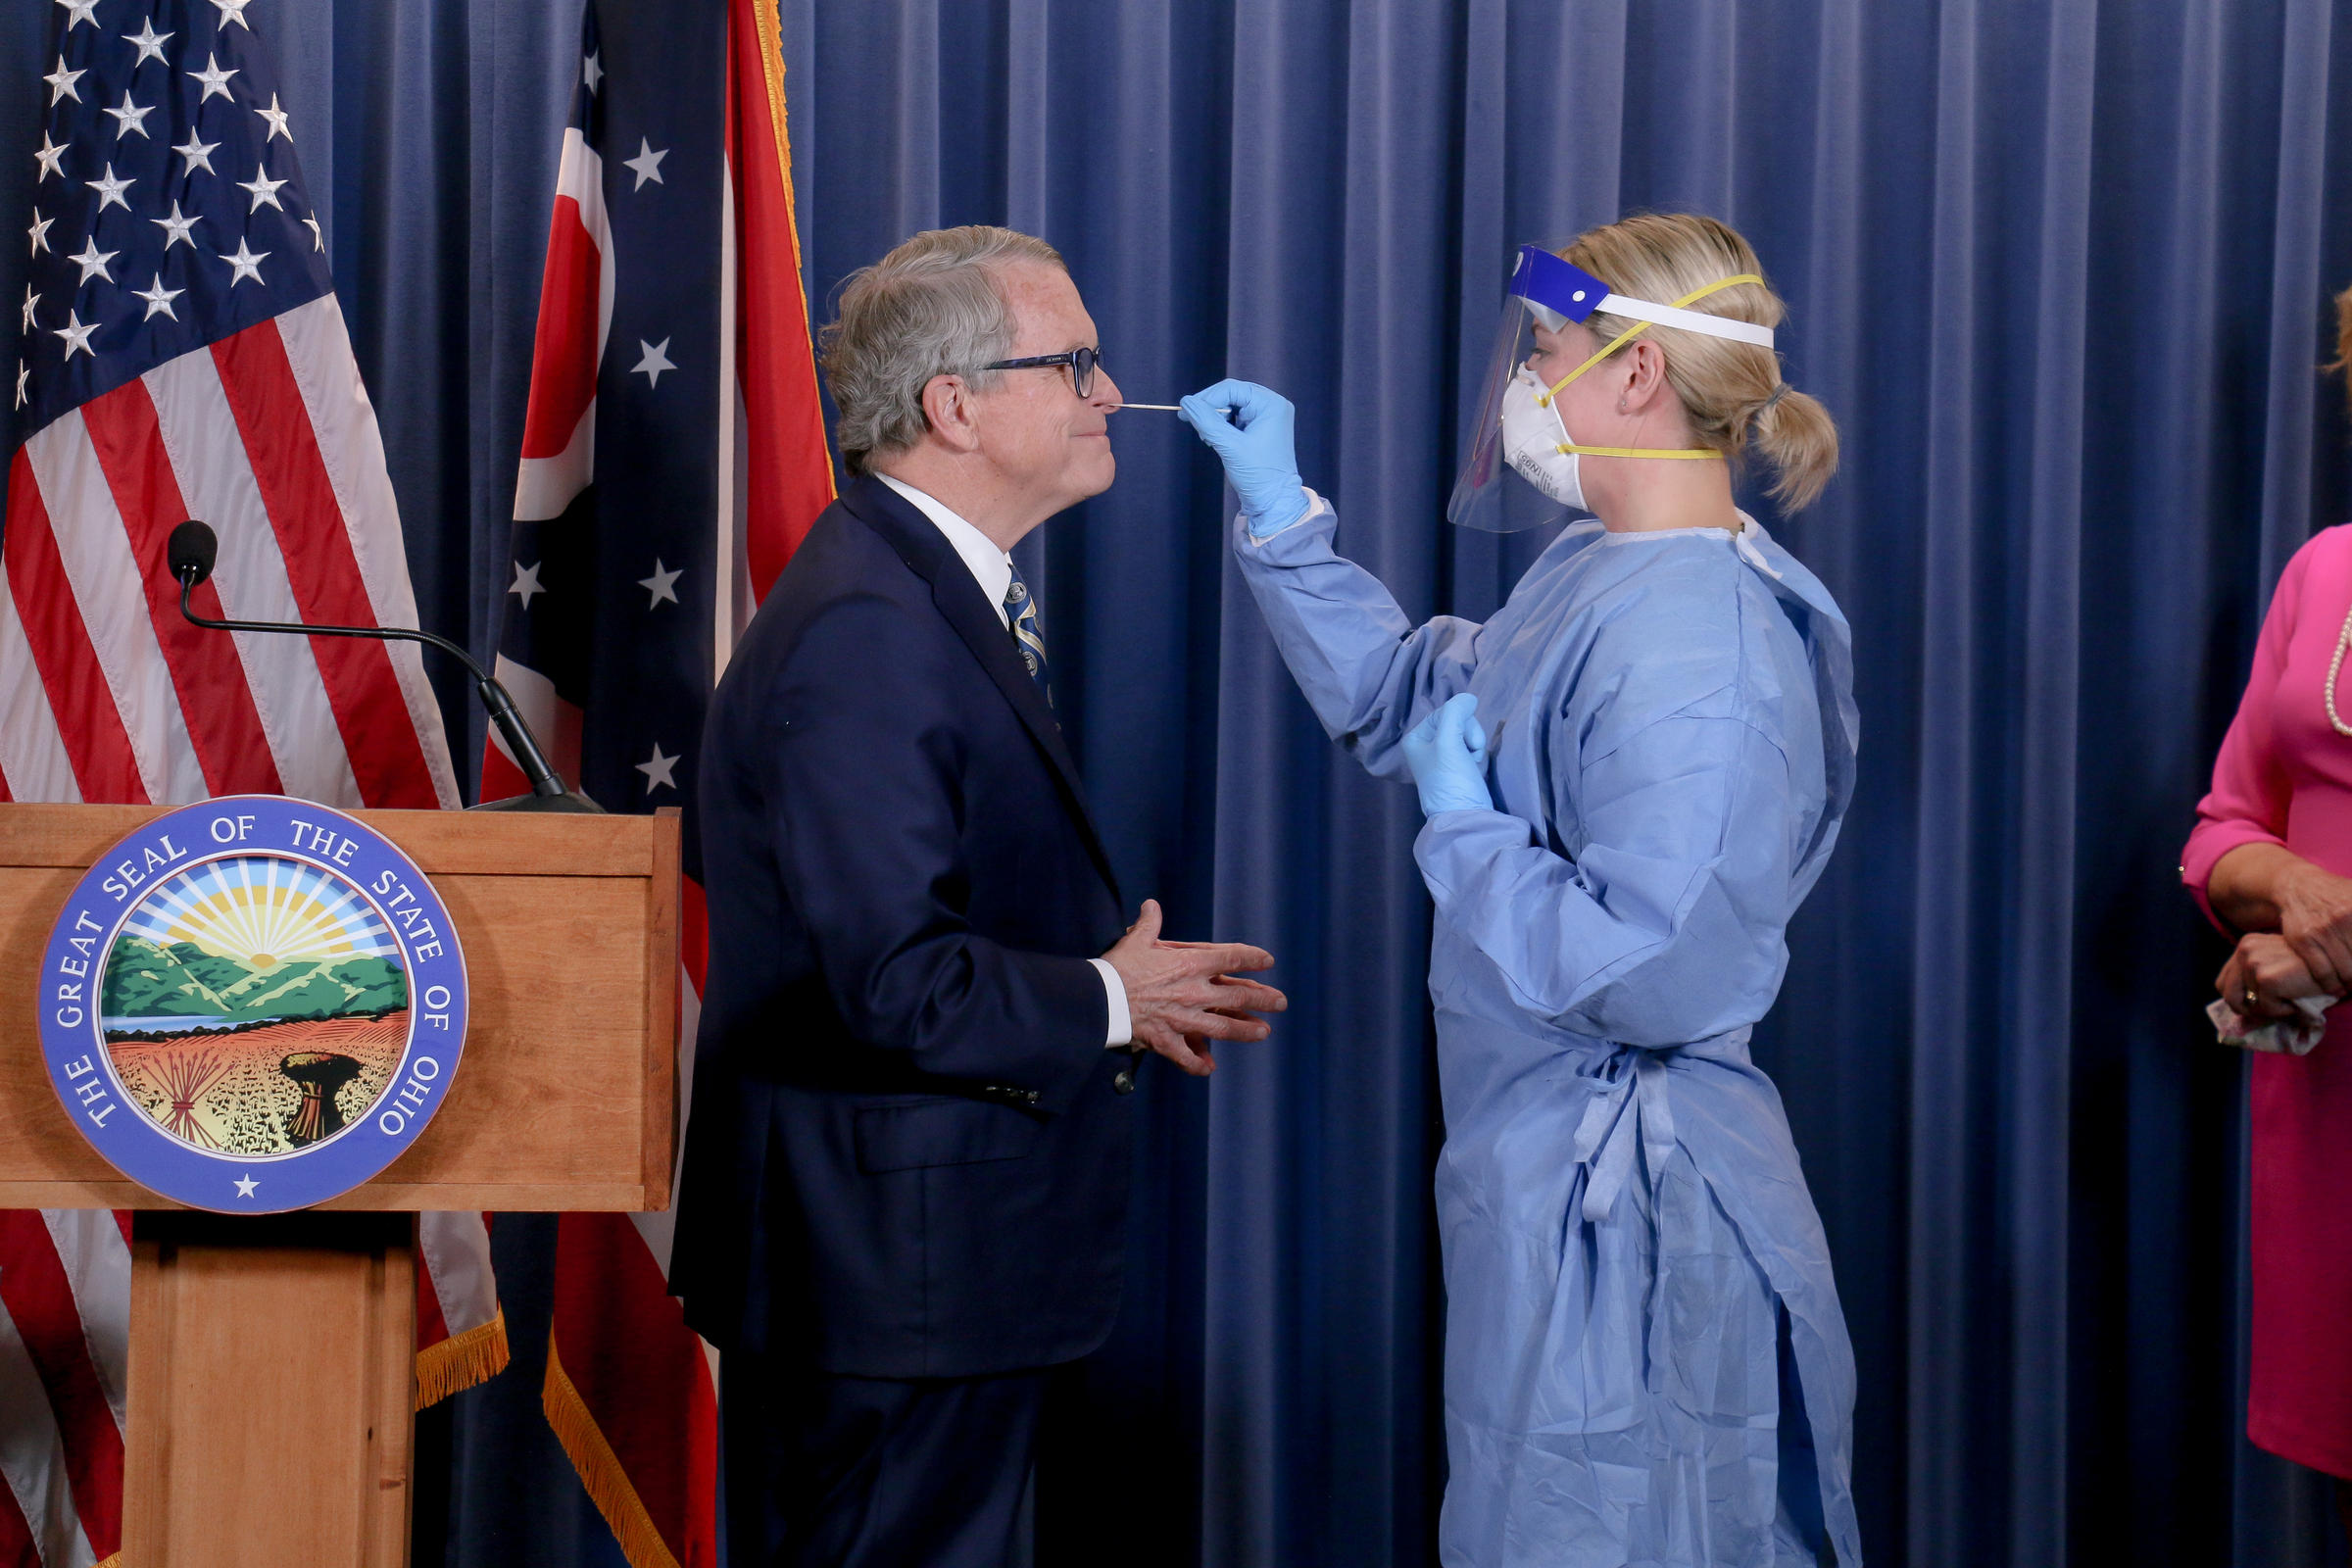 Ohio Gov. Mike DeWine tests negative for coronavirus, hours after positive result